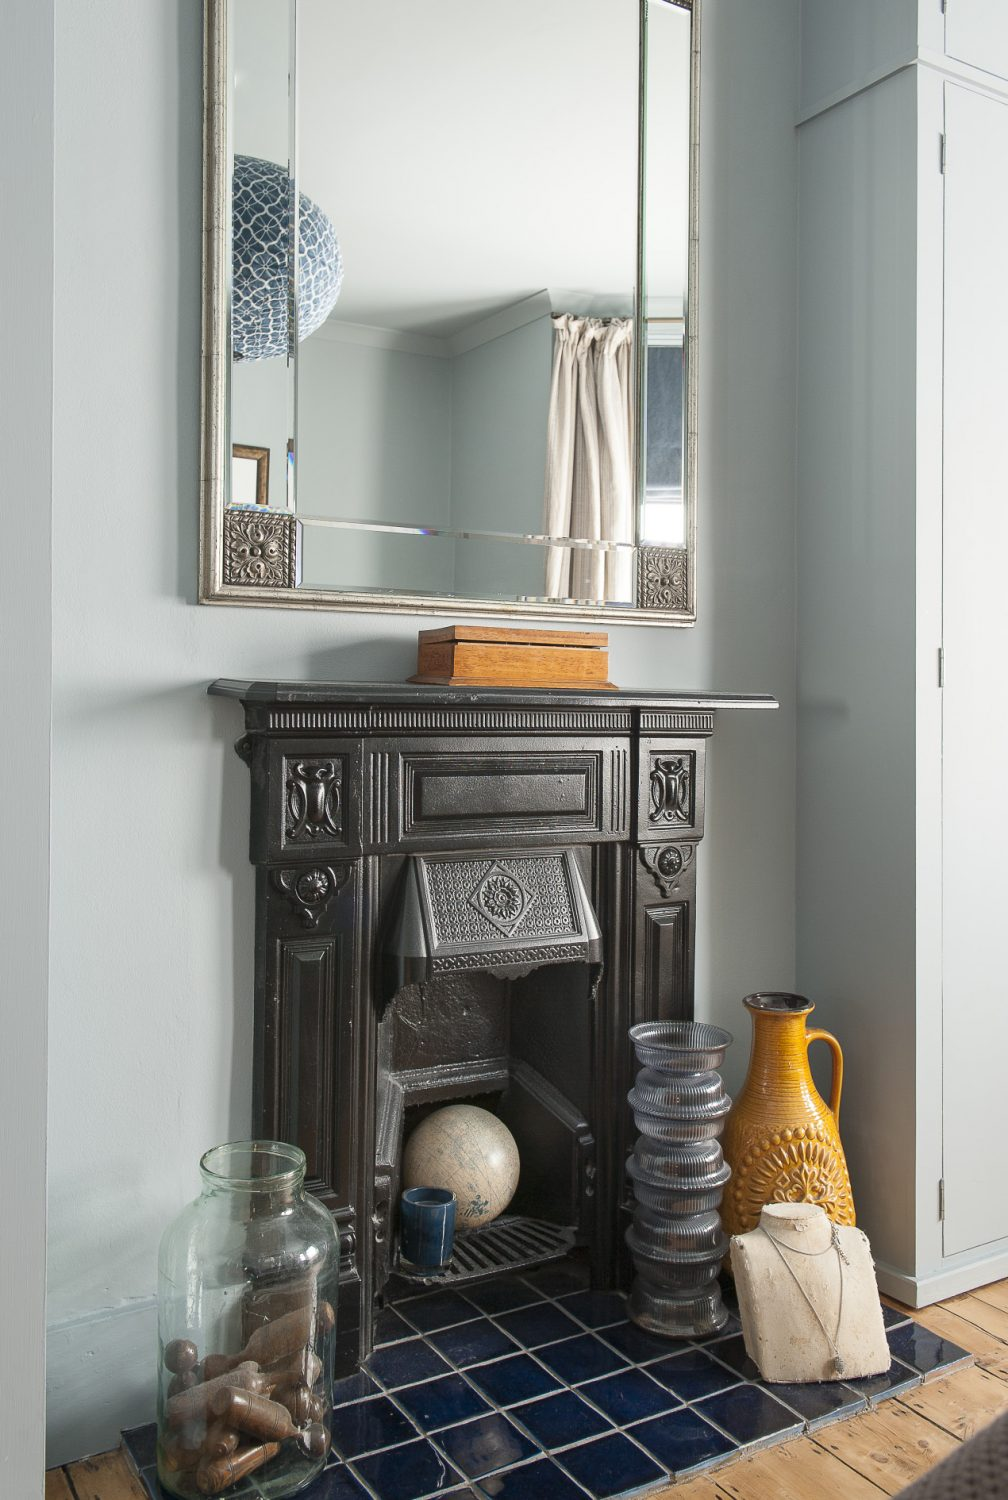 An original fireplace makes the perfect focal point for the room and a collection of 'objets trouvés'